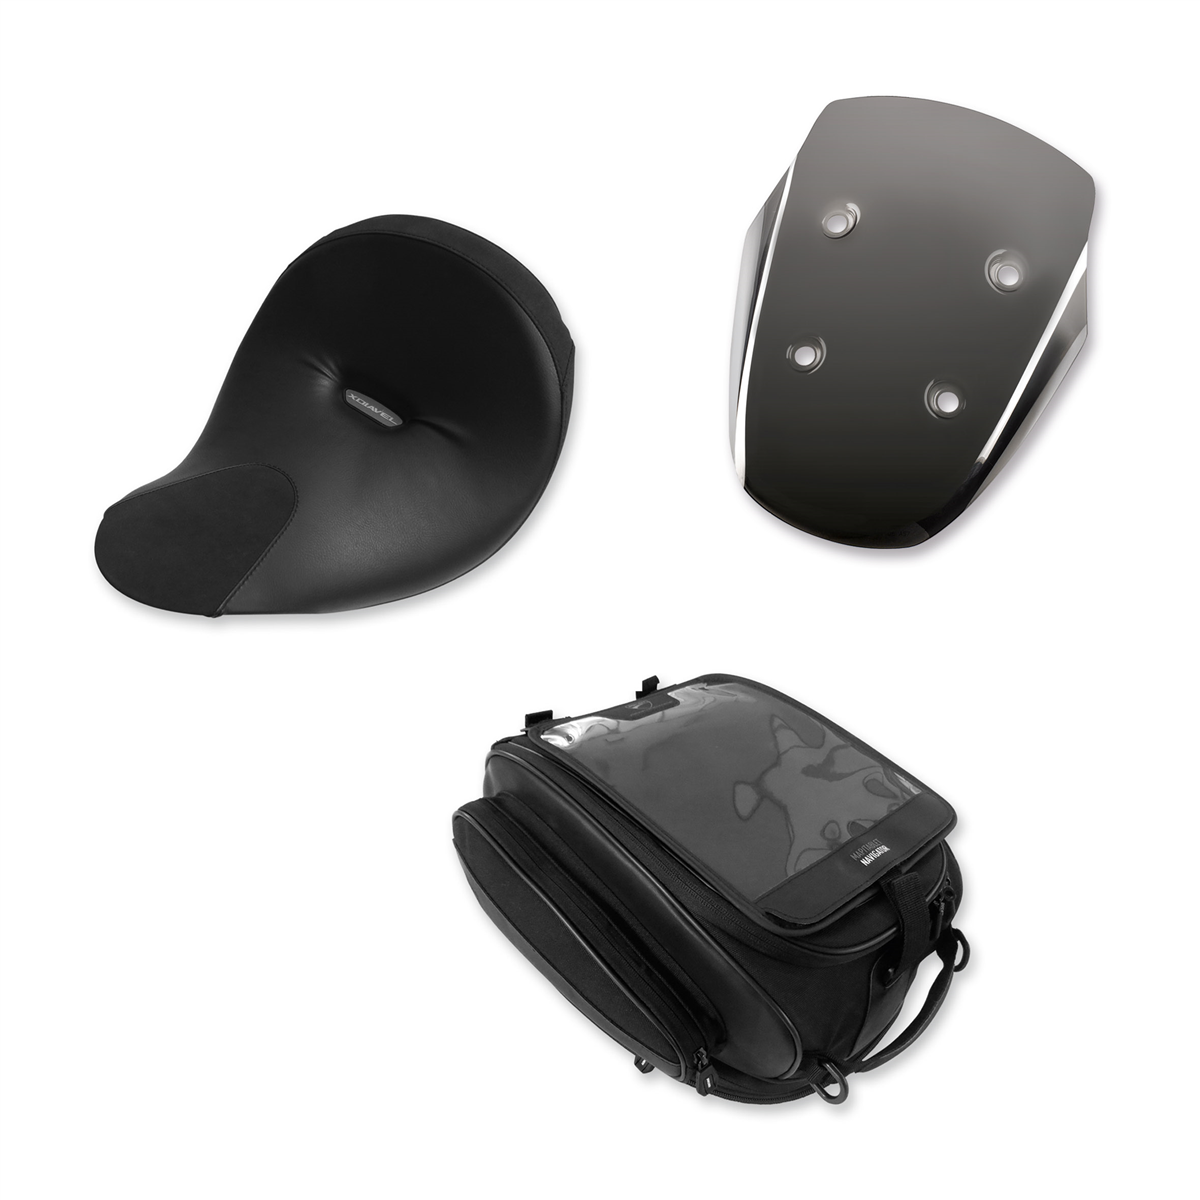 XDiavel Touring accessory package.